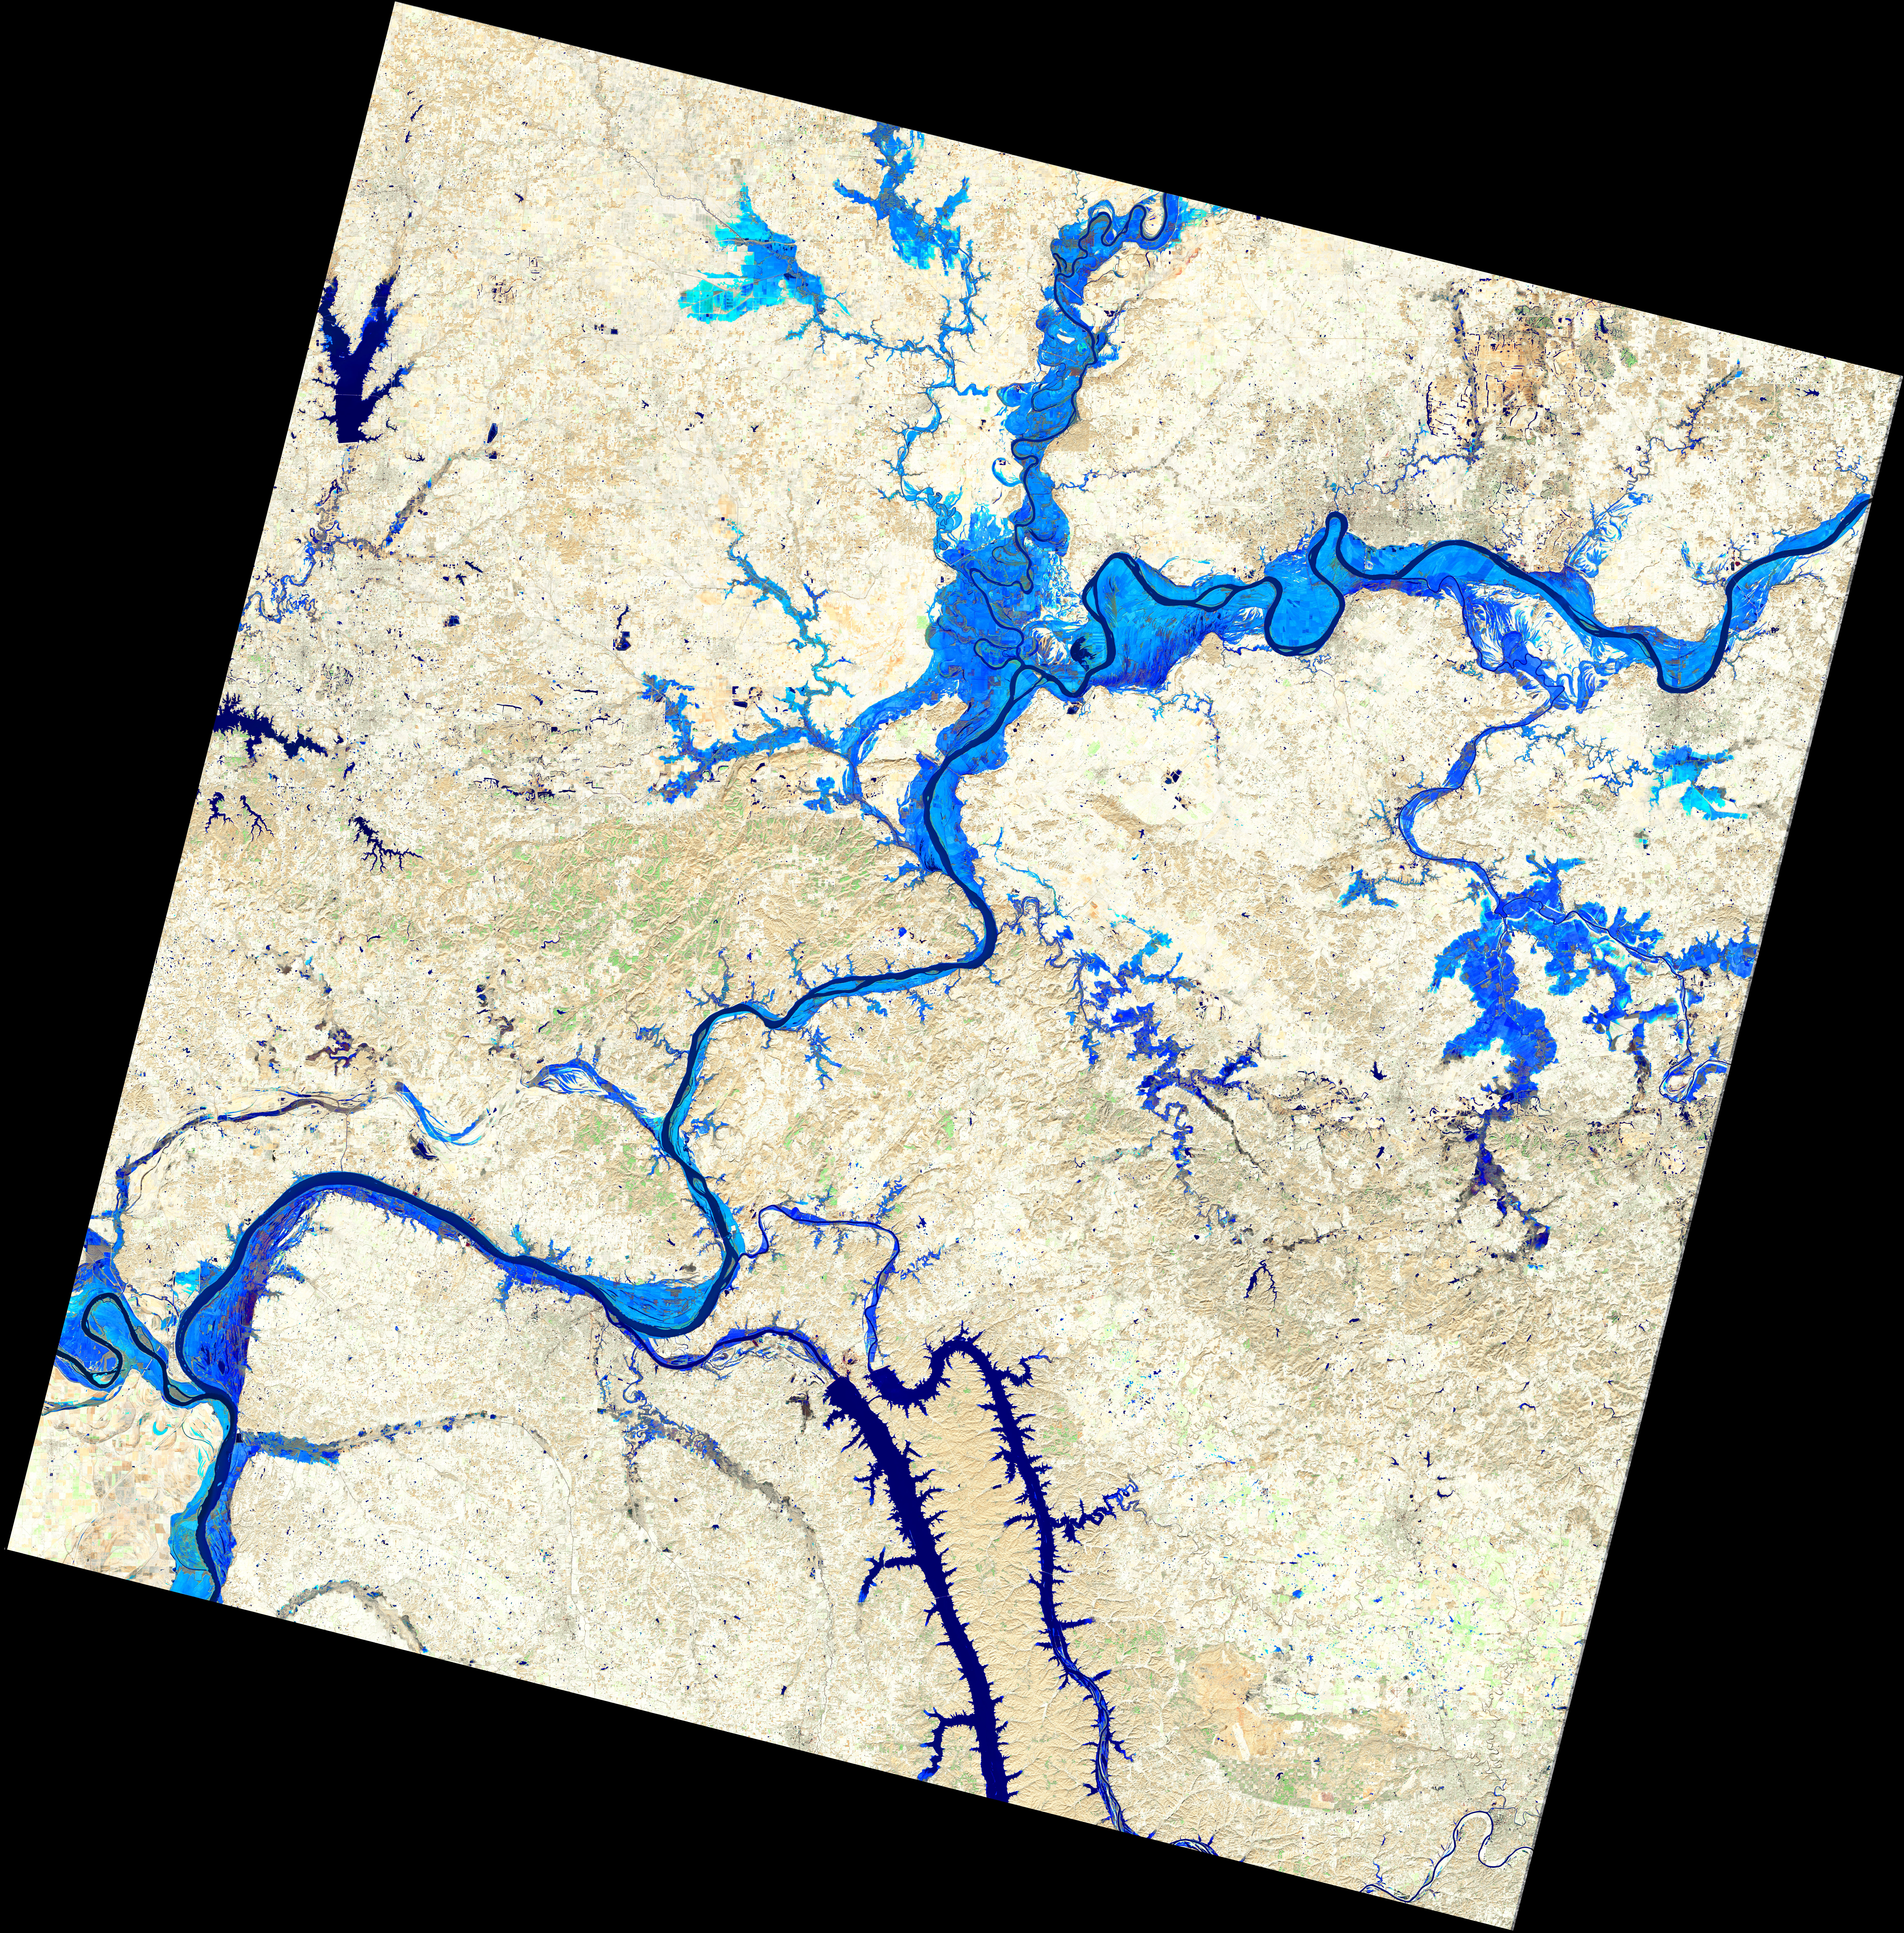 Floodwaters at the confluence of the wabash and ohio rivers gumiabroncs Choice Image